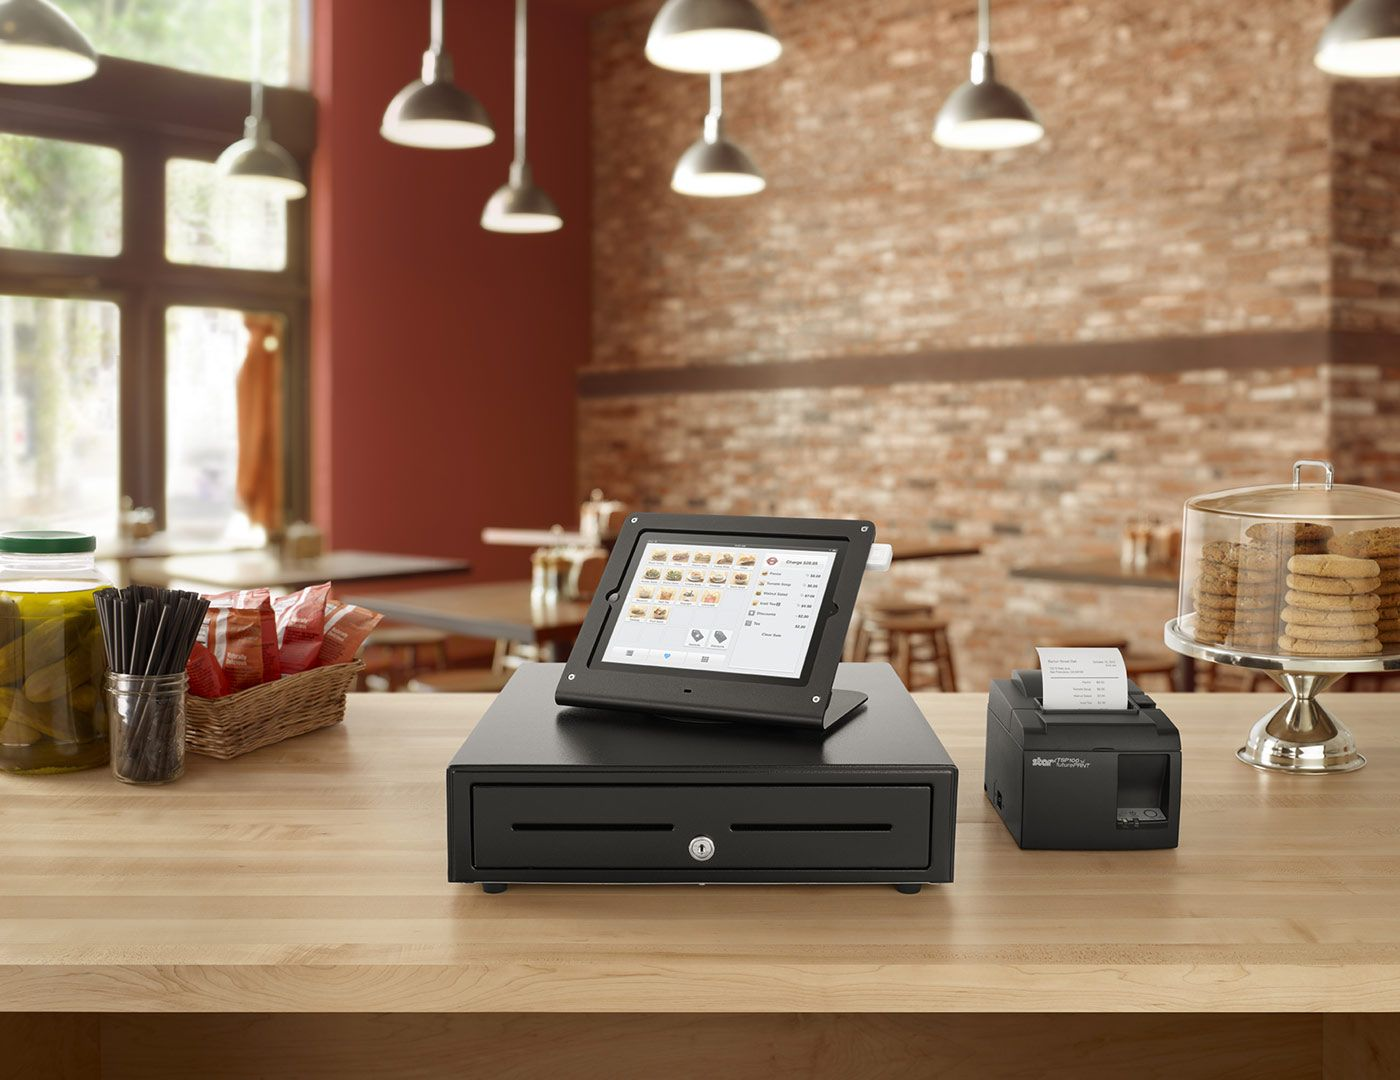 Square Introduces Business In A Box To Set Stores Up With